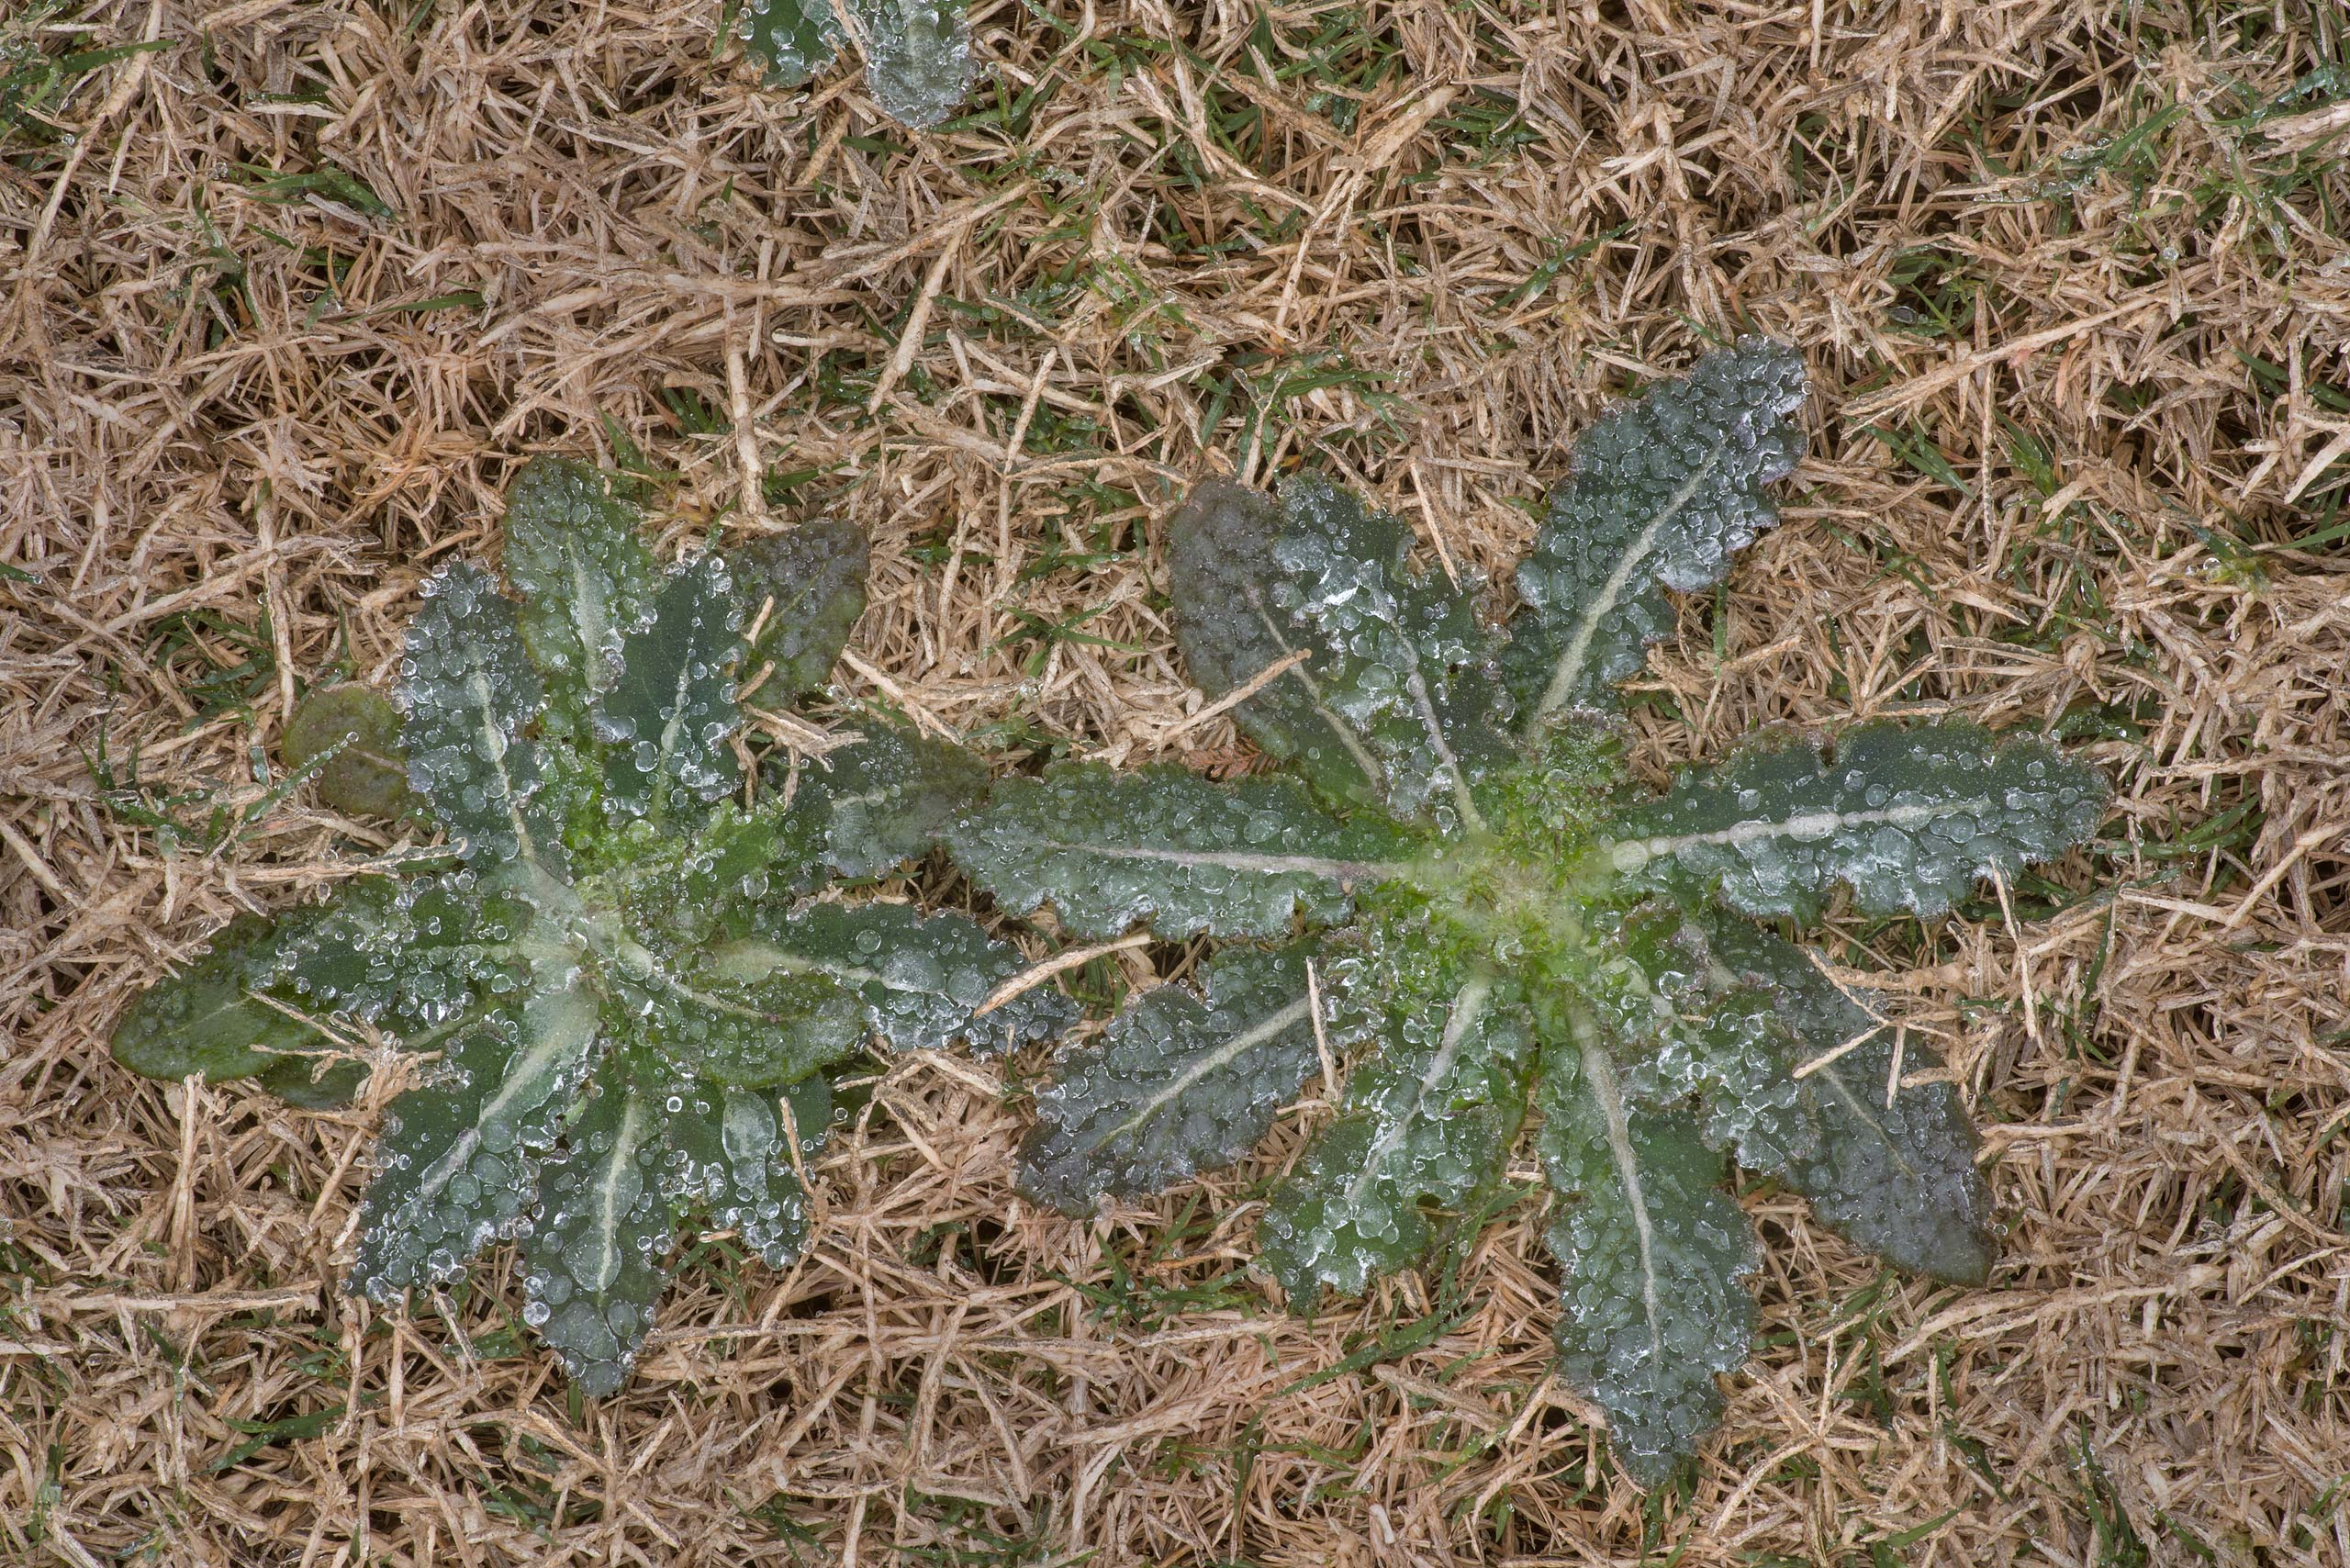 Icy rosettes of sow thistle (Sonchus oleraceus...M University. College Station, Texas